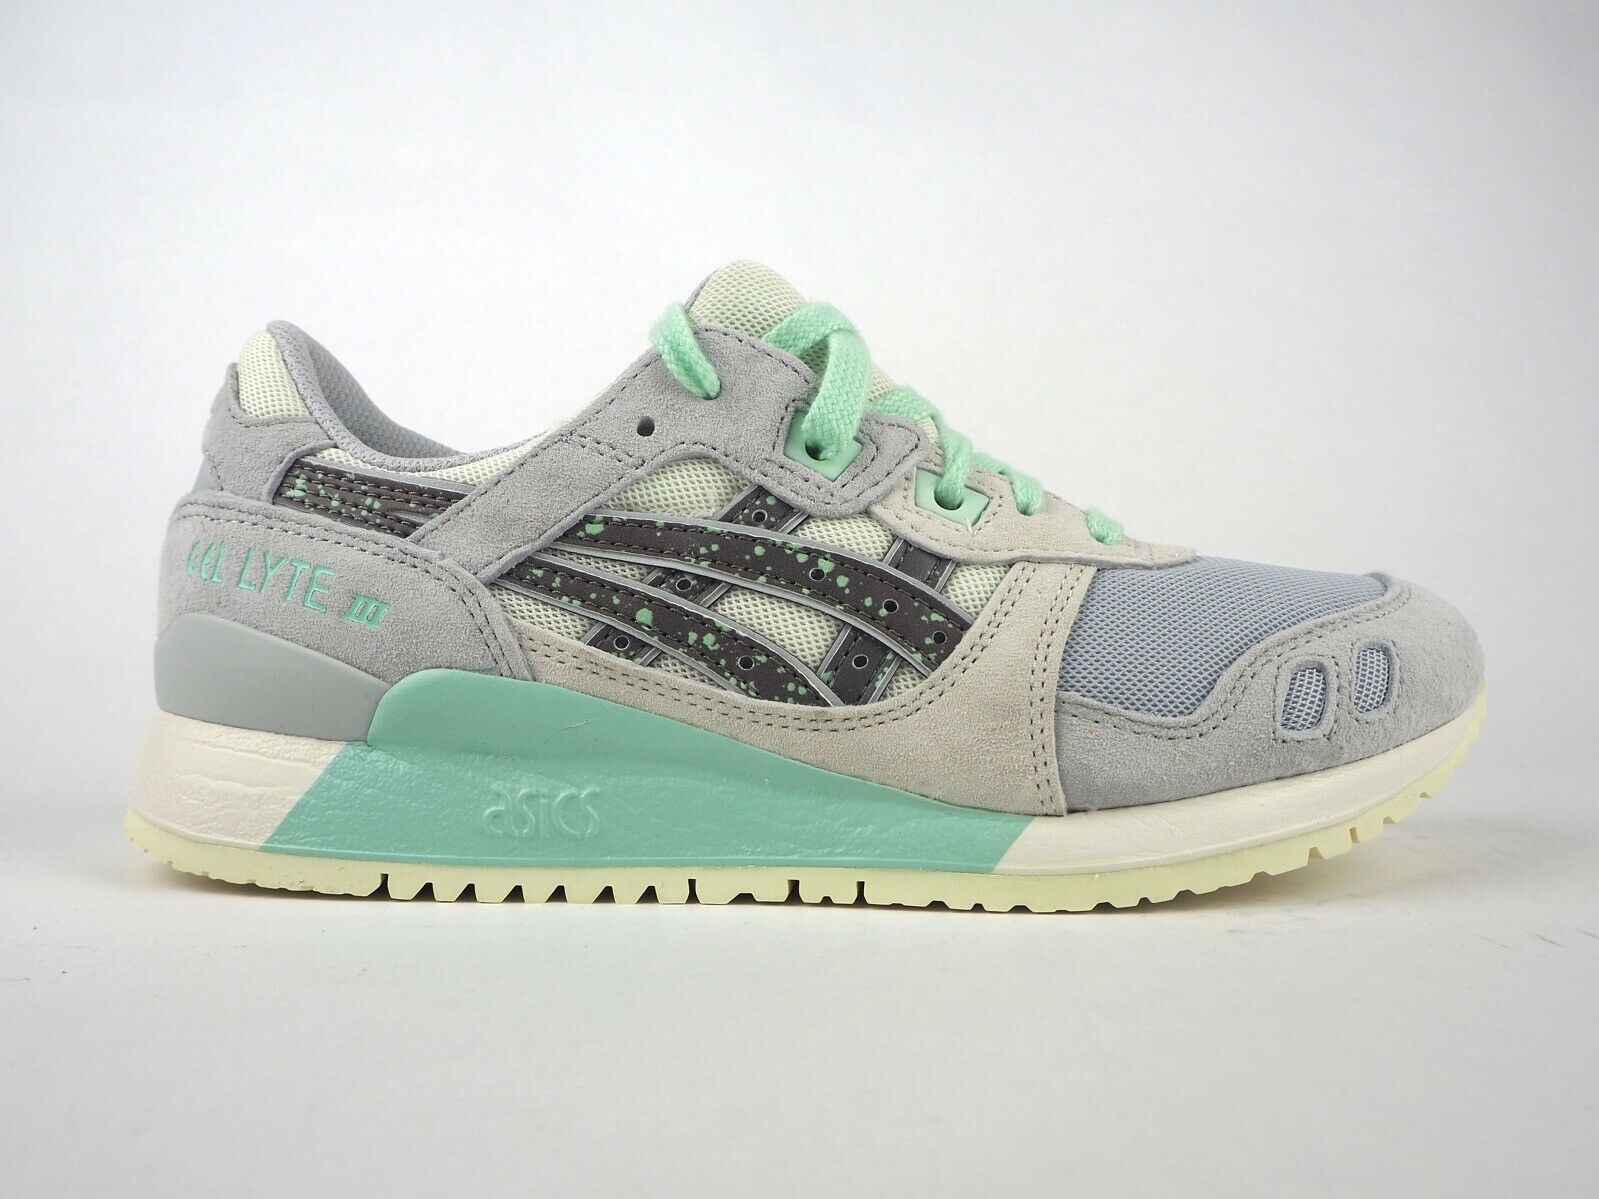 Womens Asics Gel Lyte III H7R6L 9696 Light Grey Lace Up Casual Trainers